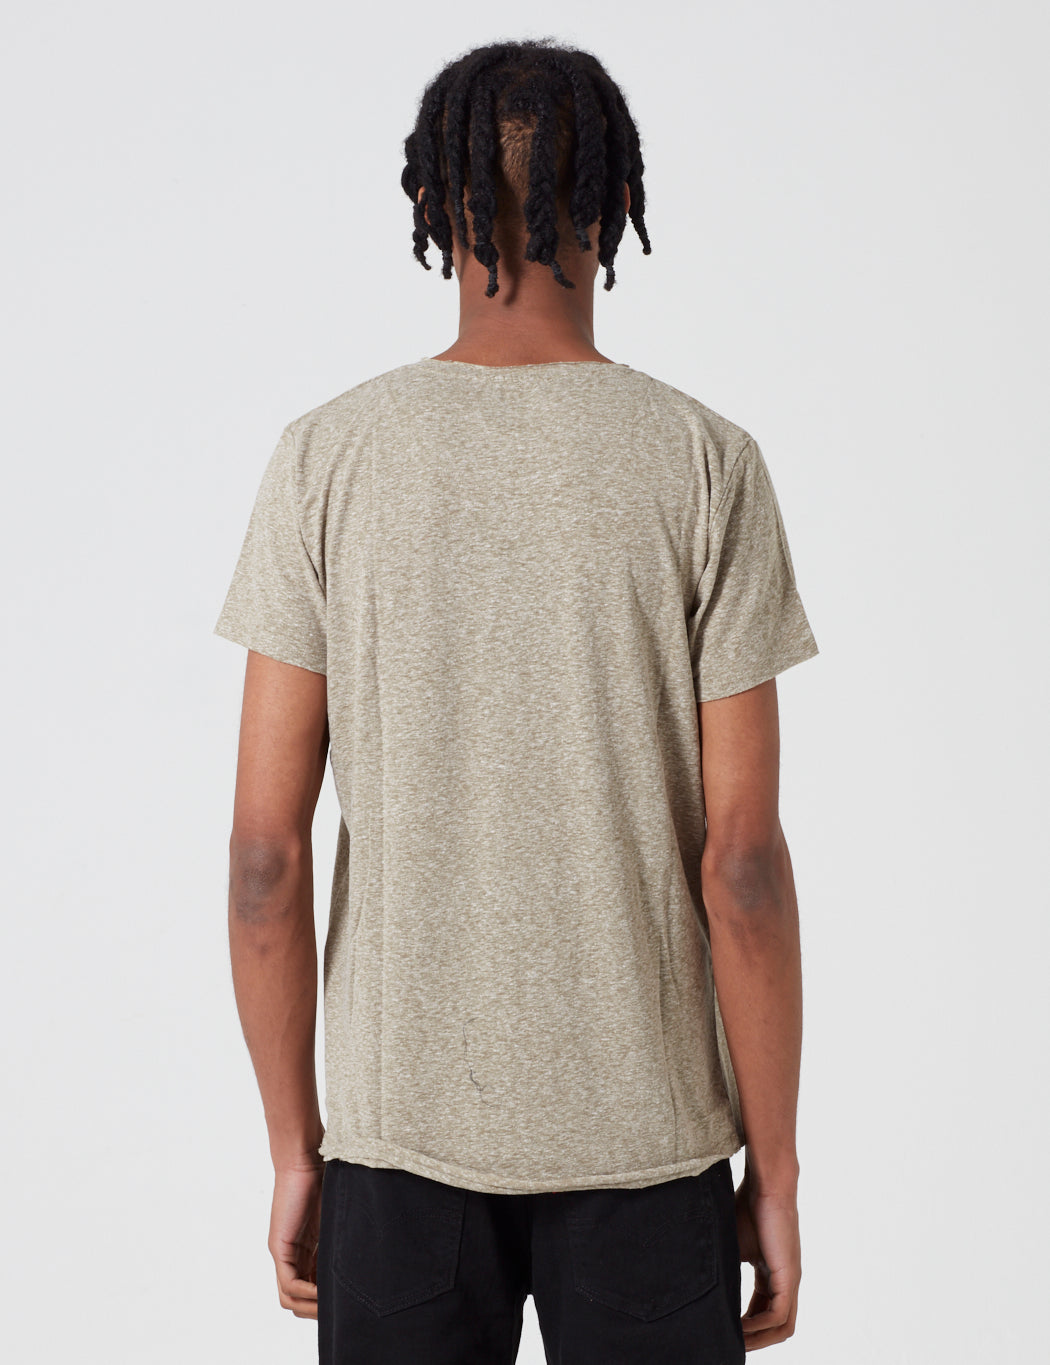 Suit Hawk T-Shirt - Dust Green